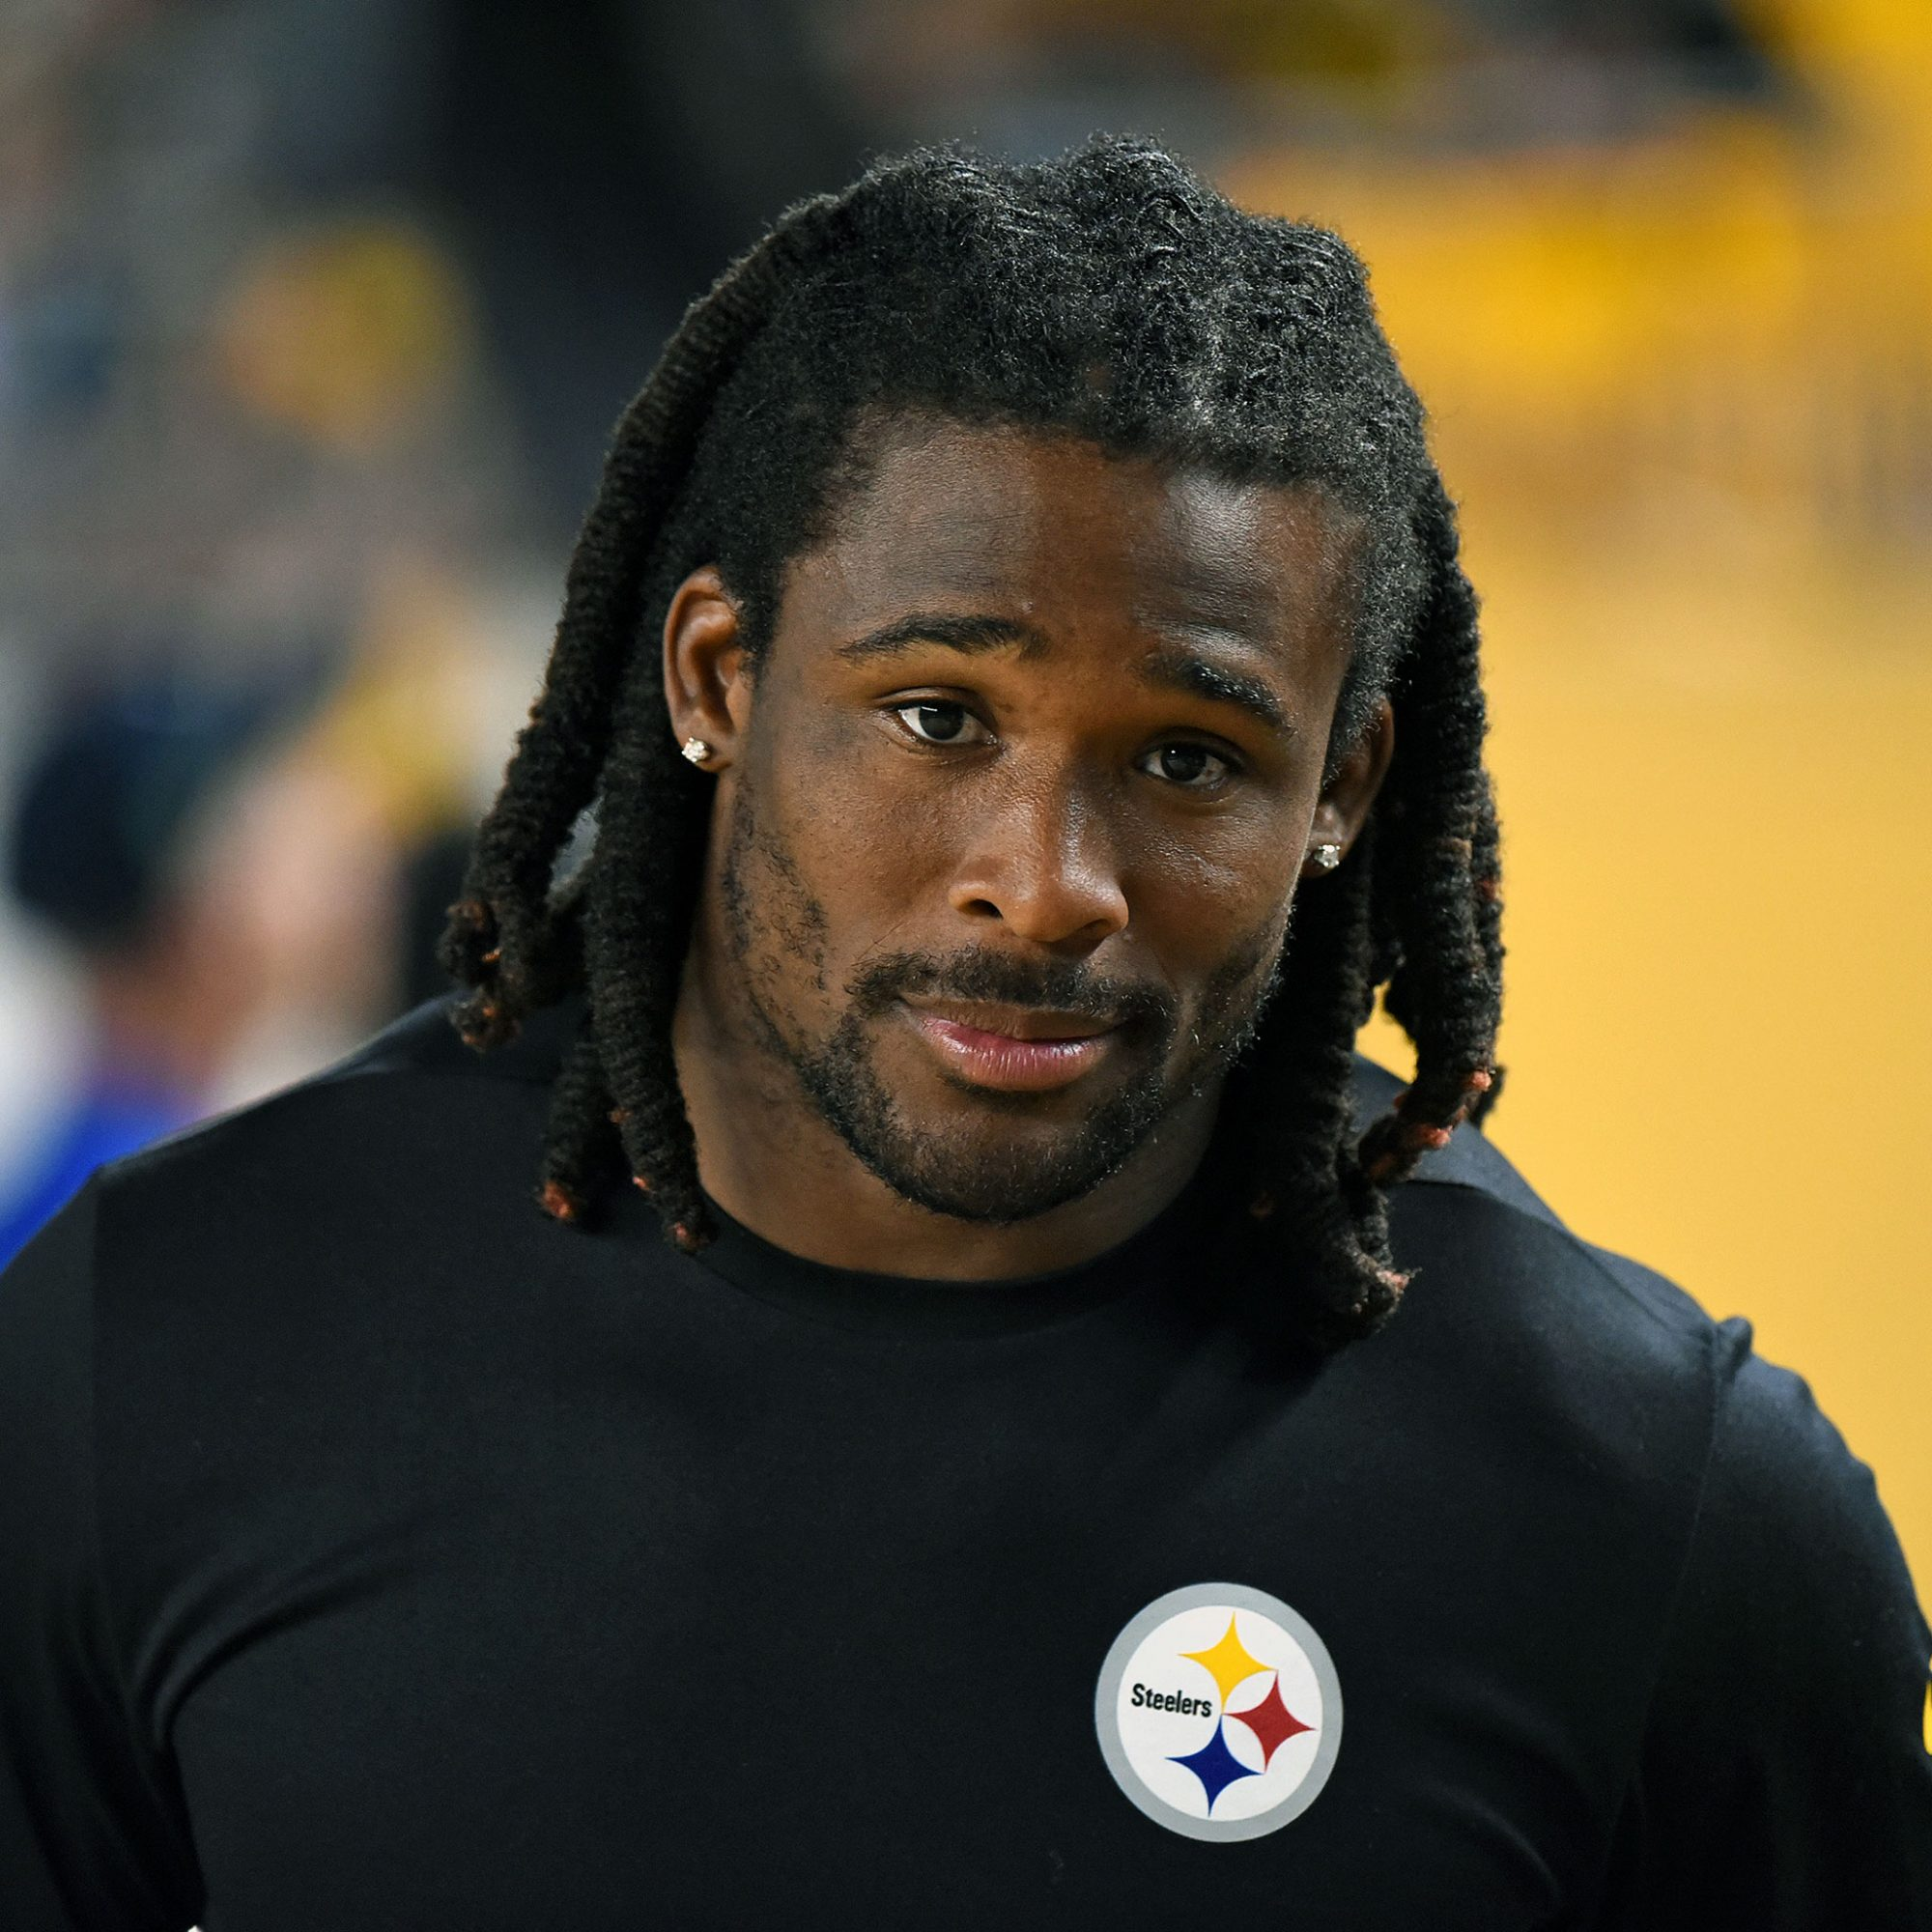 deangelo-williams-stiffs-server-fwx